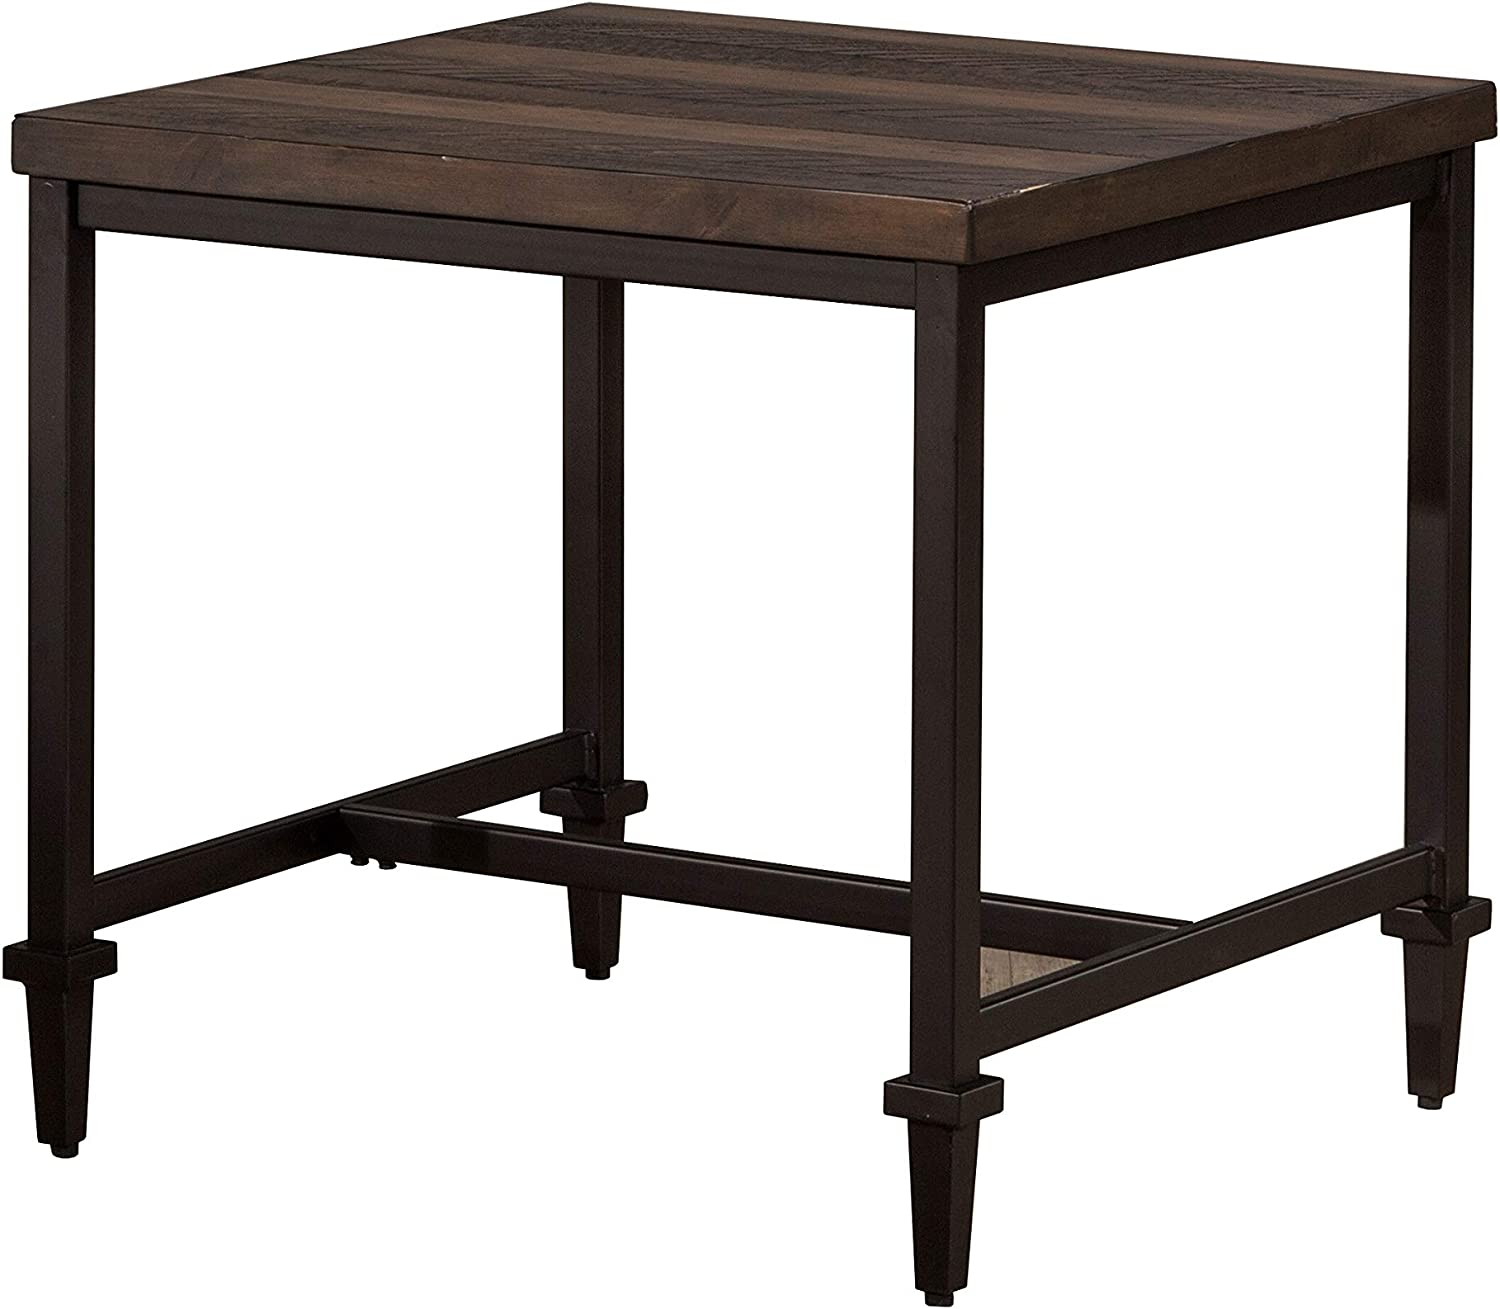 Hillsdale Furniture Trevino end, Accent Table, Brown